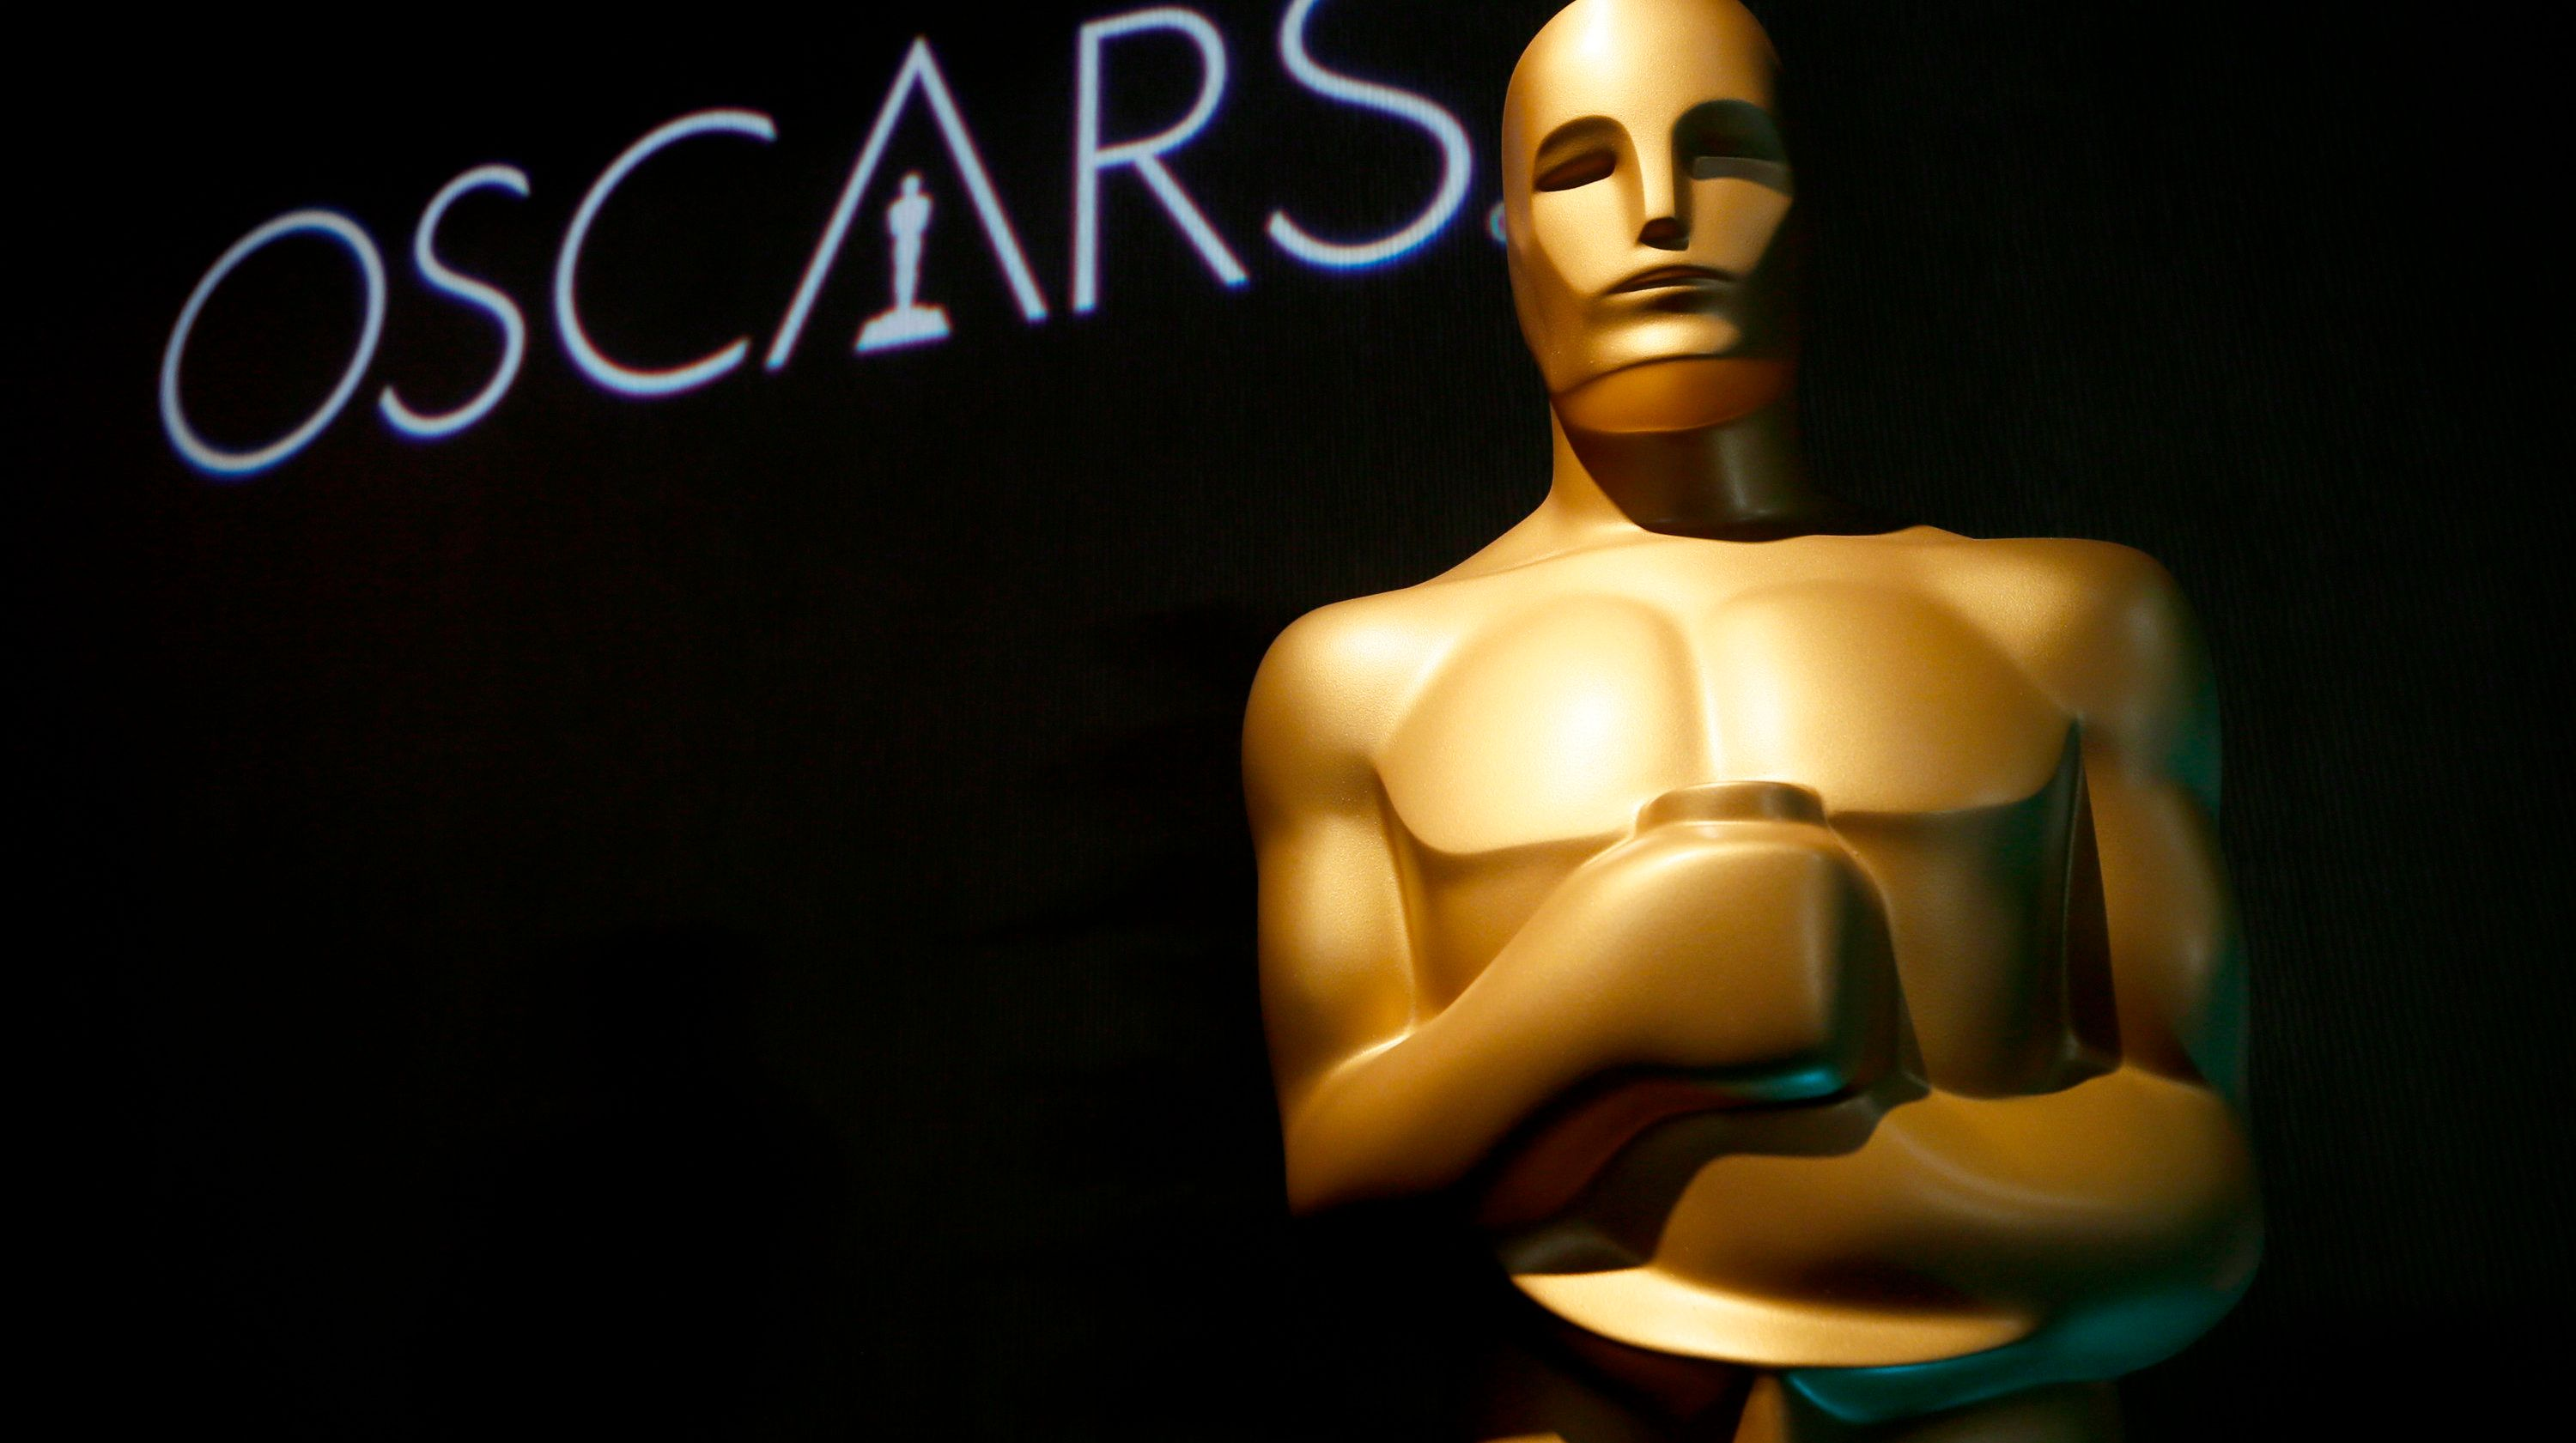 Oscars To Snub These 4 Categories By Awarding Them During Commercial